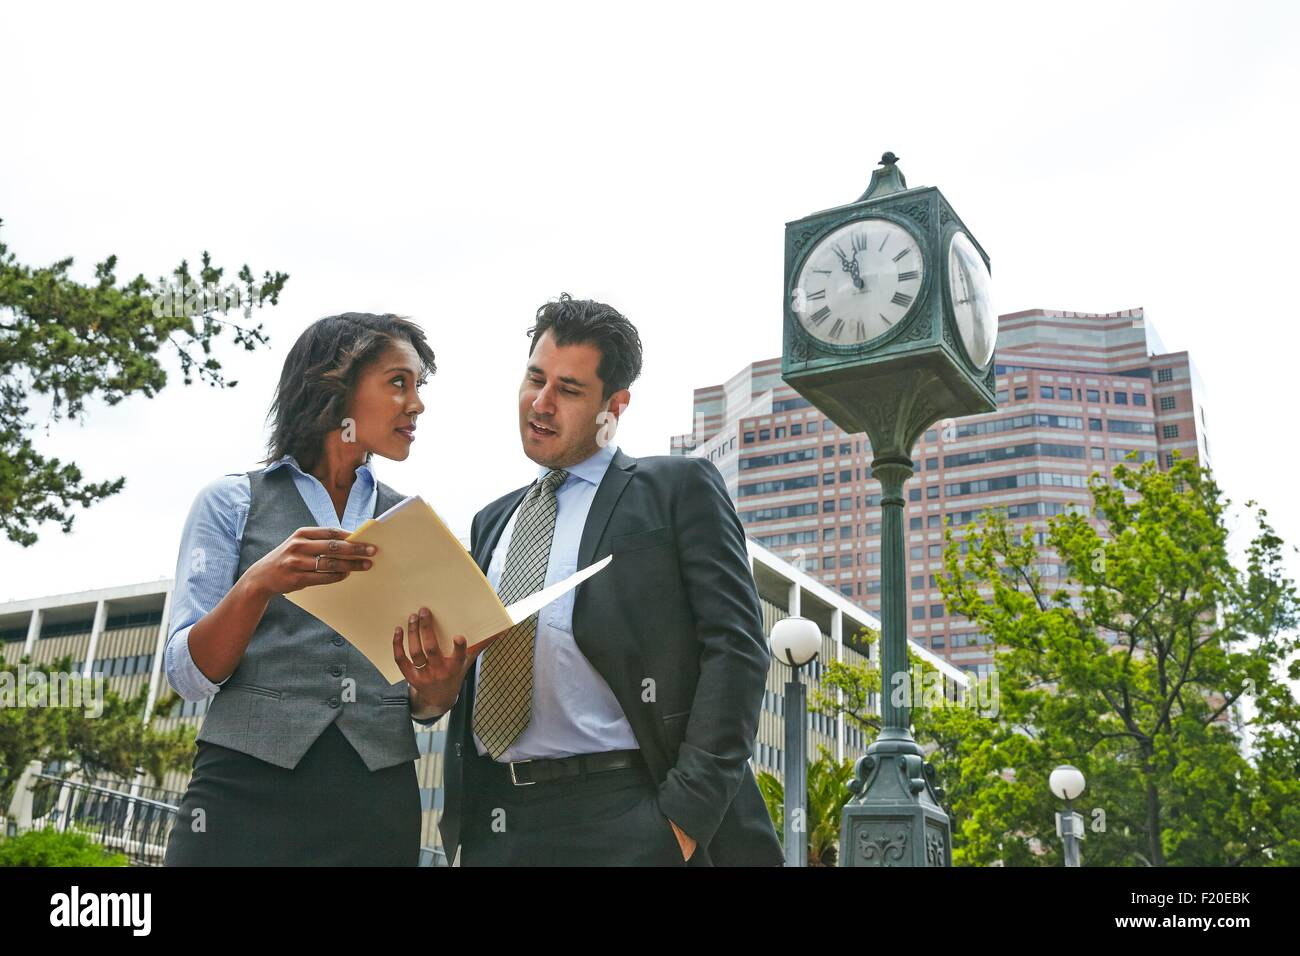 Front view of business people standing next to clock looking at paperwork, waist up - Stock Image